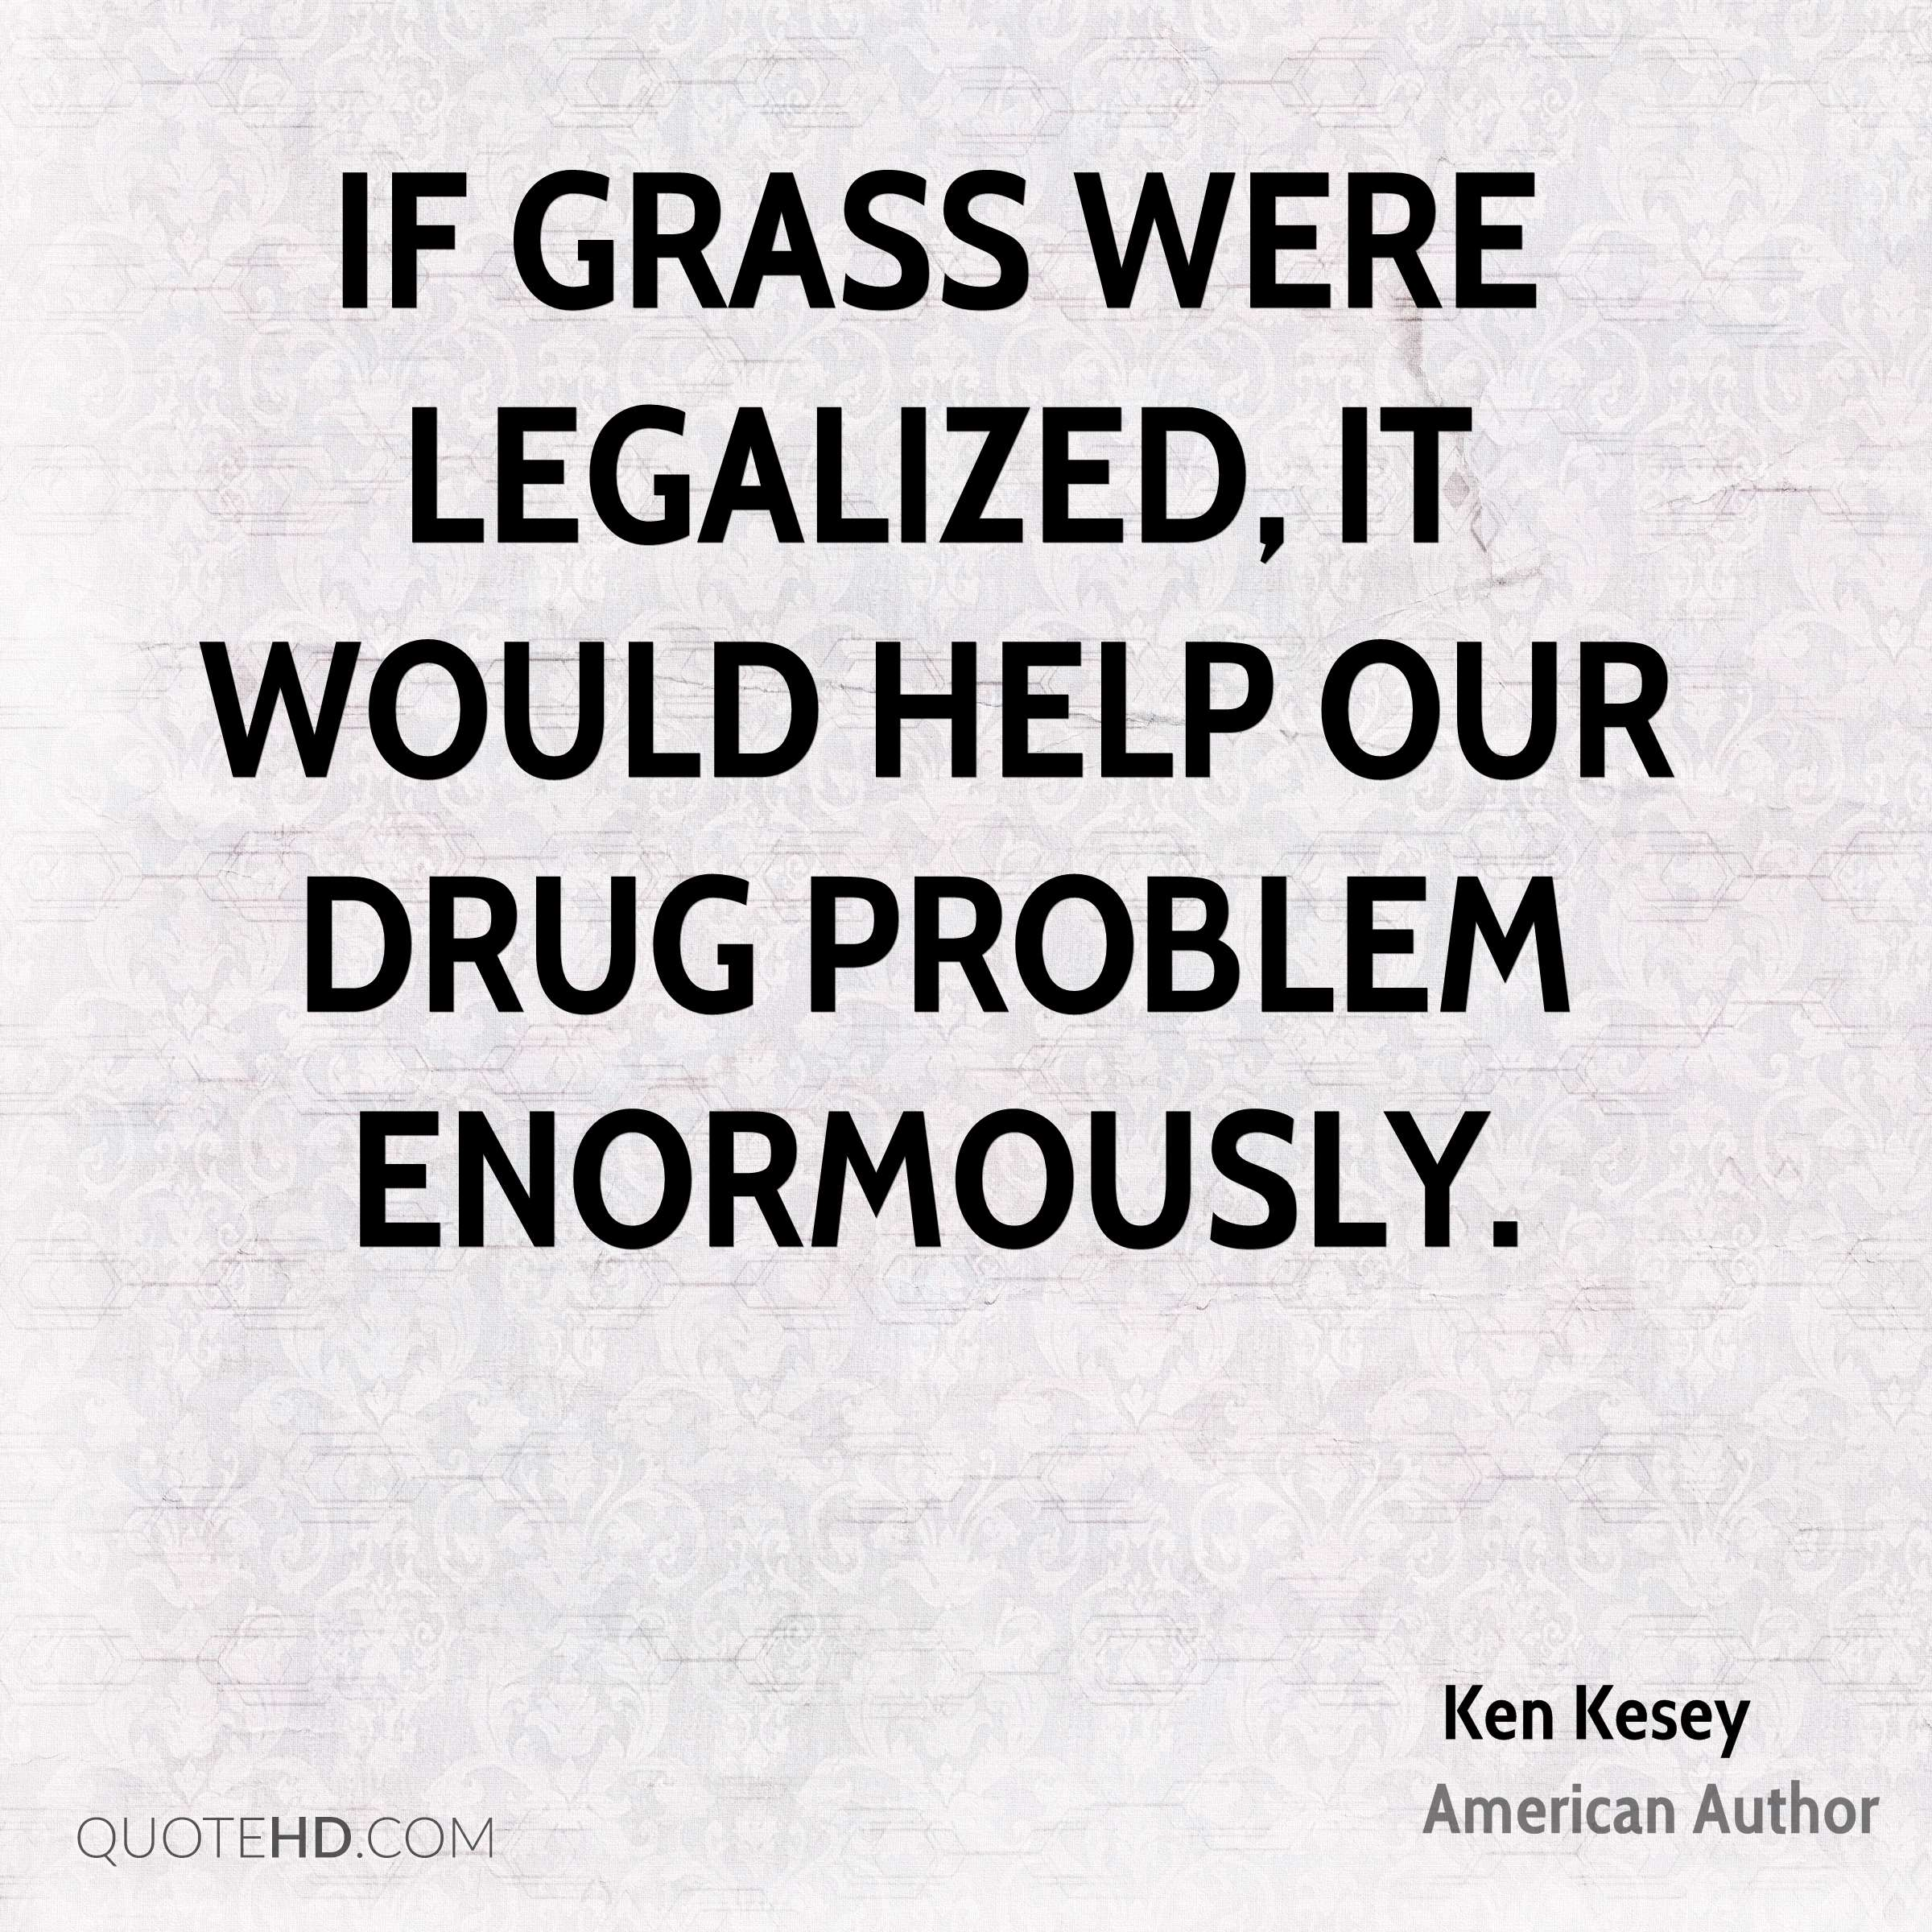 If grass were legalized, it would help our drug problem enormously.